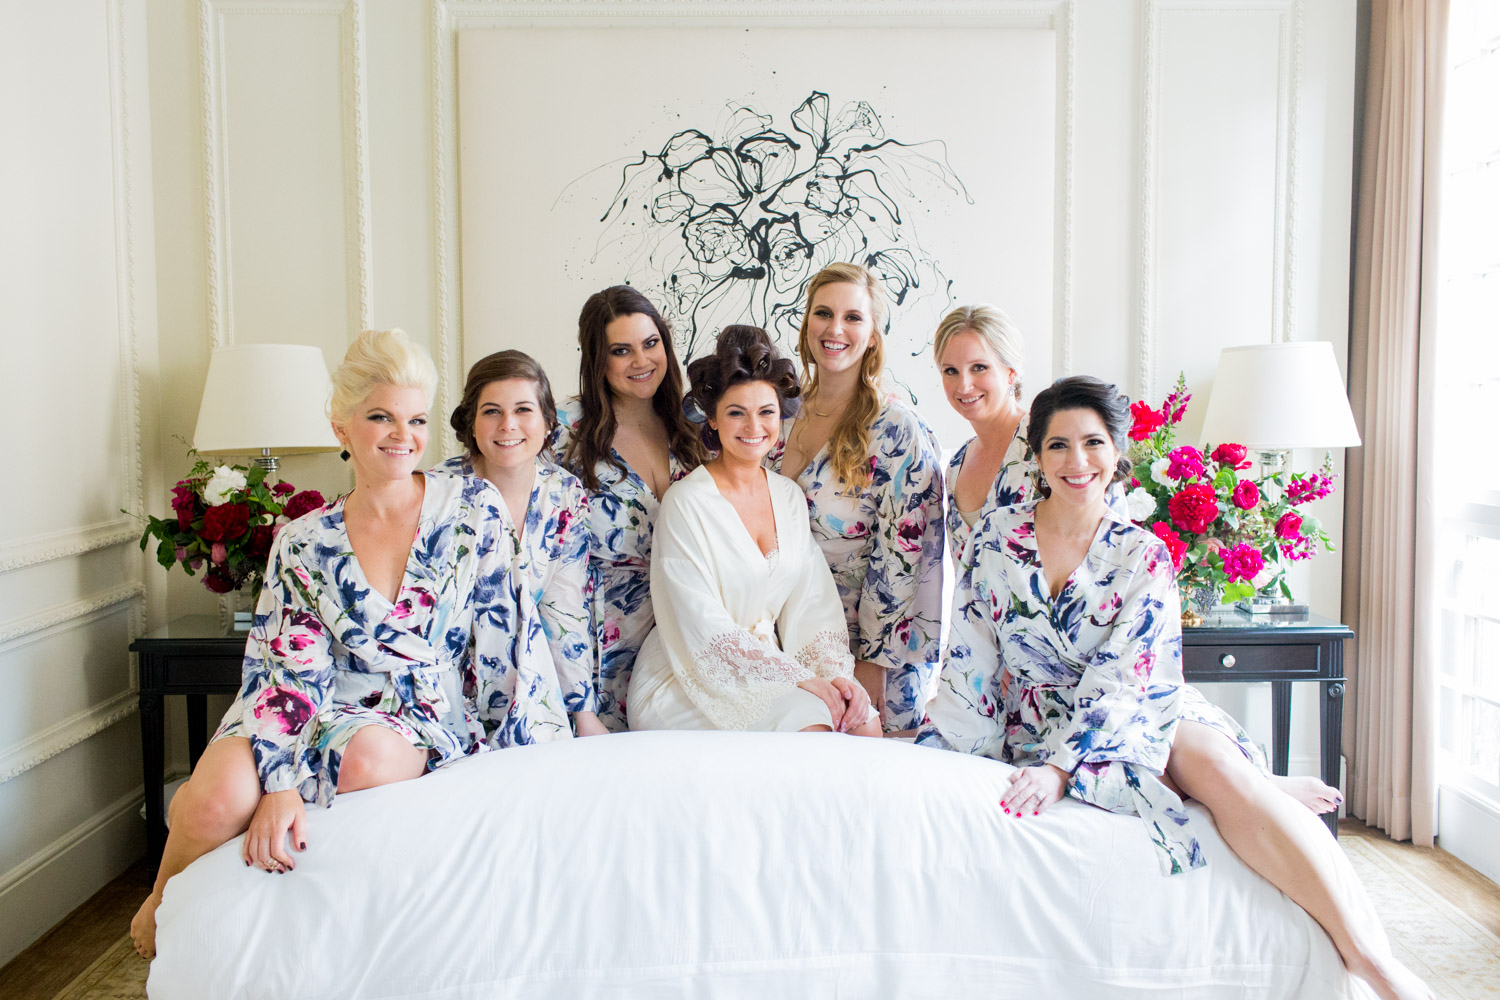 Bride and bridesmaids in robes on the bed, Cavin Elizabeth Photography